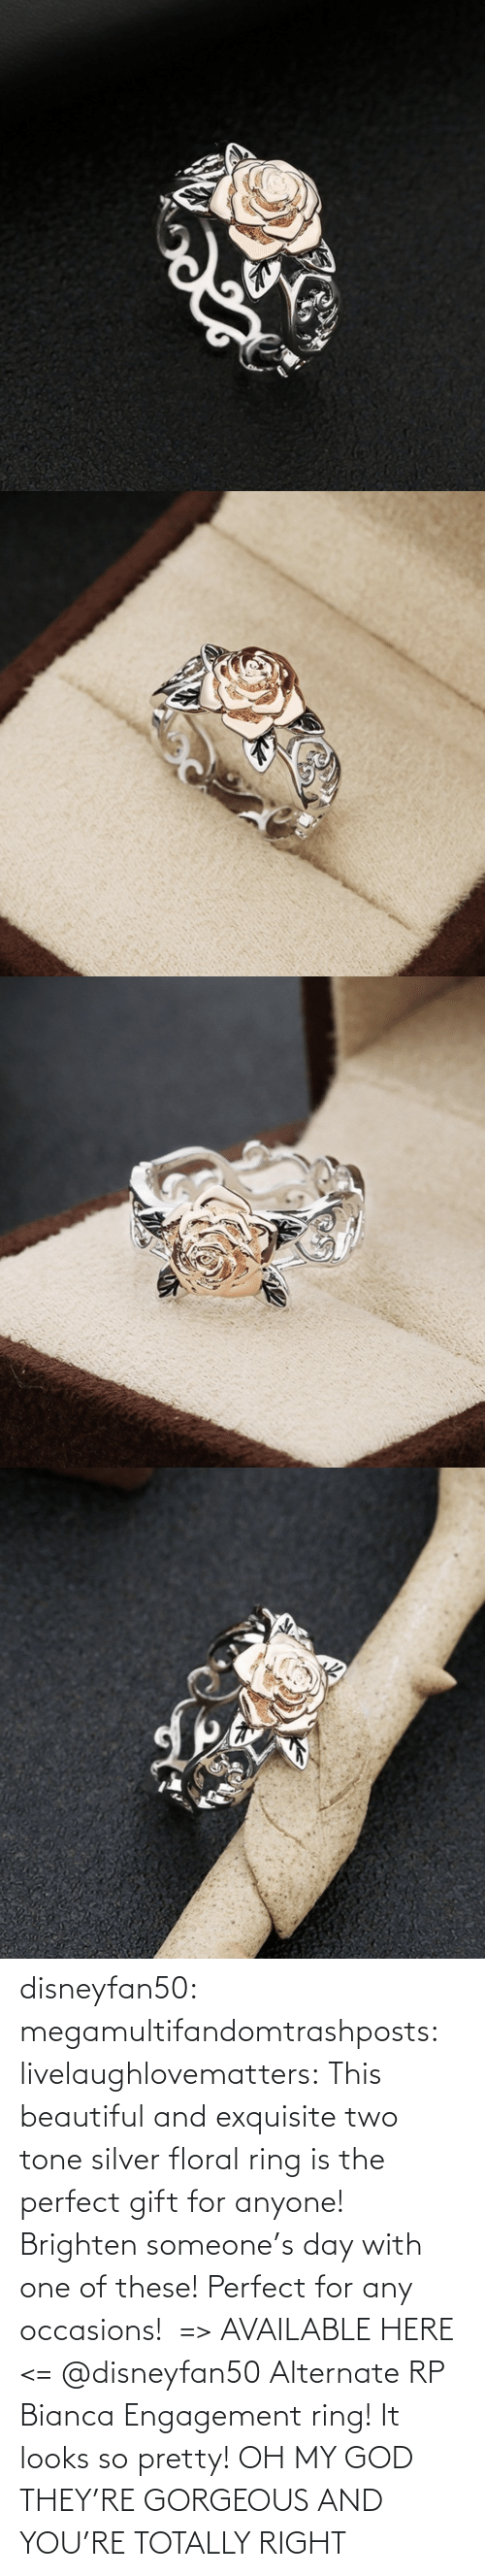 oh my god: disneyfan50:  megamultifandomtrashposts: livelaughlovematters:  This beautiful and exquisite two tone silver floral ring is the perfect gift for anyone! Brighten someone's day with one of these! Perfect for any occasions!  => AVAILABLE HERE <=    @disneyfan50 Alternate RP Bianca Engagement ring! It looks so pretty!  OH MY GOD THEY'RE GORGEOUS AND YOU'RE TOTALLY RIGHT